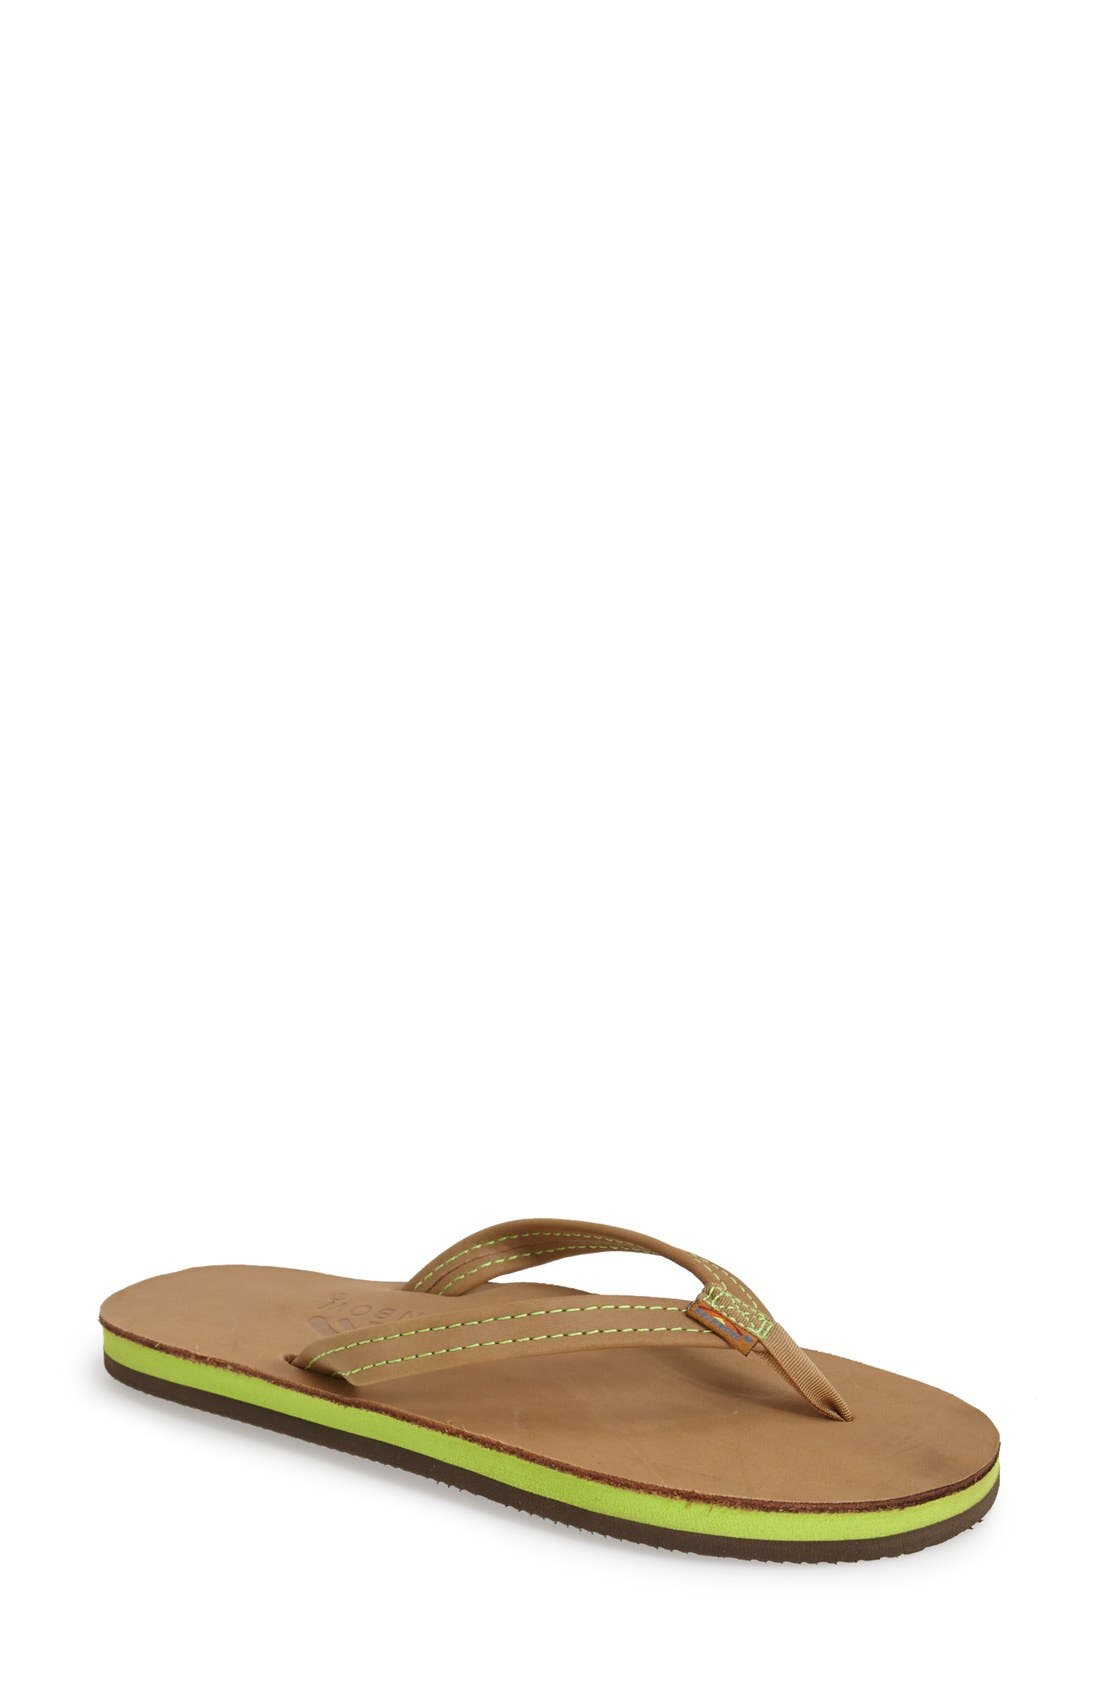 Rainbow Double Layer Thong Sandal,                             Main thumbnail 1, color,                             320